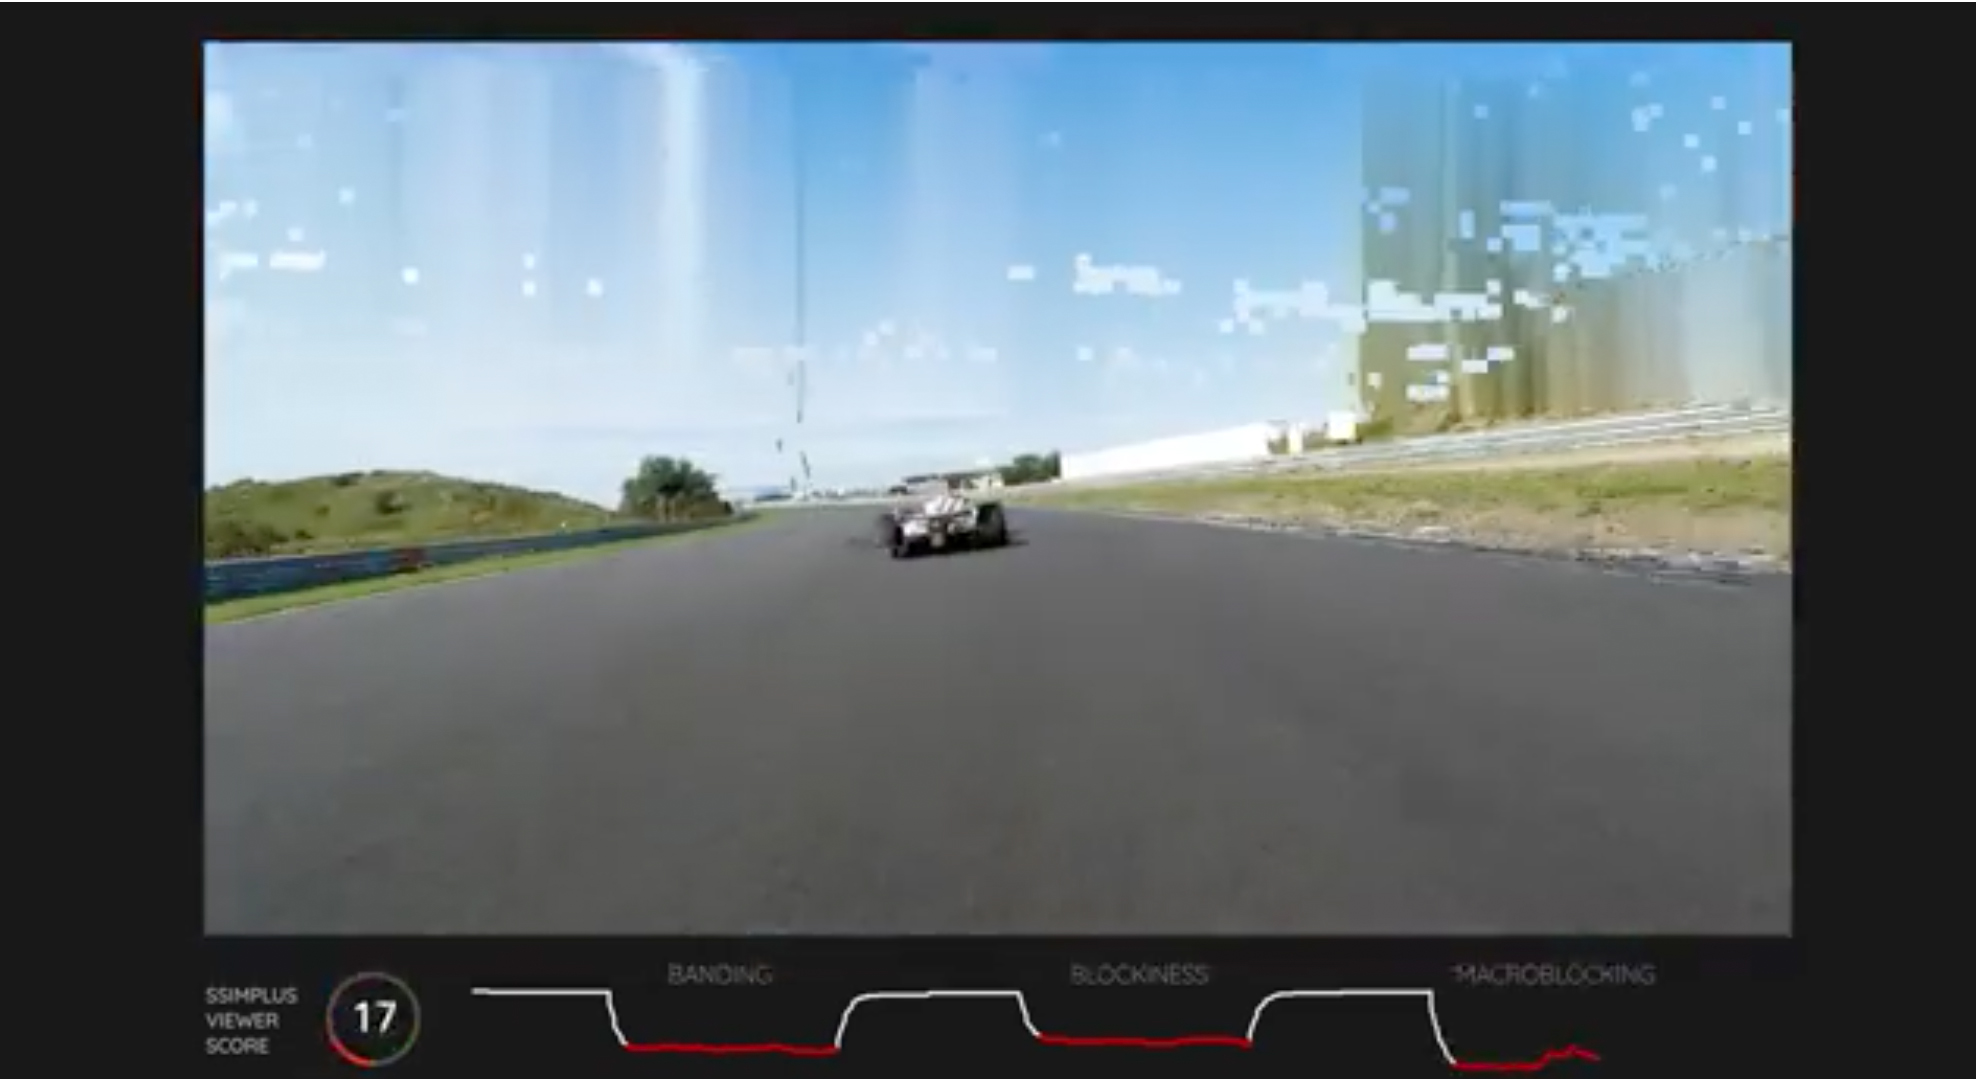 Banding video snapshot with a race car driver in a race car. SSIMWAVW detects these issues and helps you fix them before they reach your viewer.